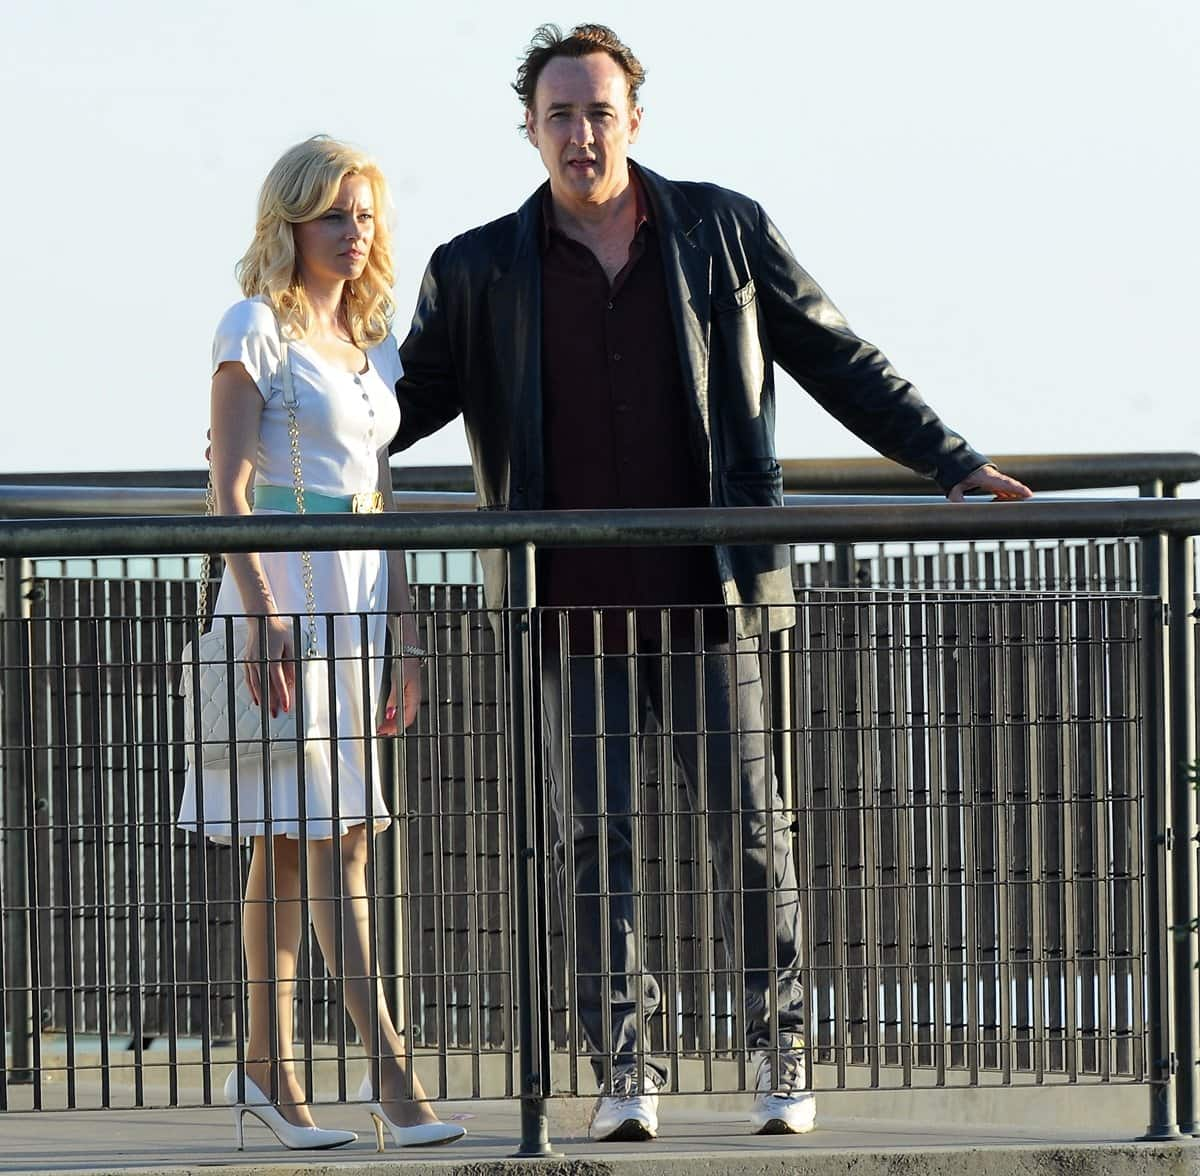 Elizabeth Banks as Melinda Ledbetter and John Cusack as Brian–Future watching the sunset while filming a scene for the 2014 American biographical drama film Love & Mercy